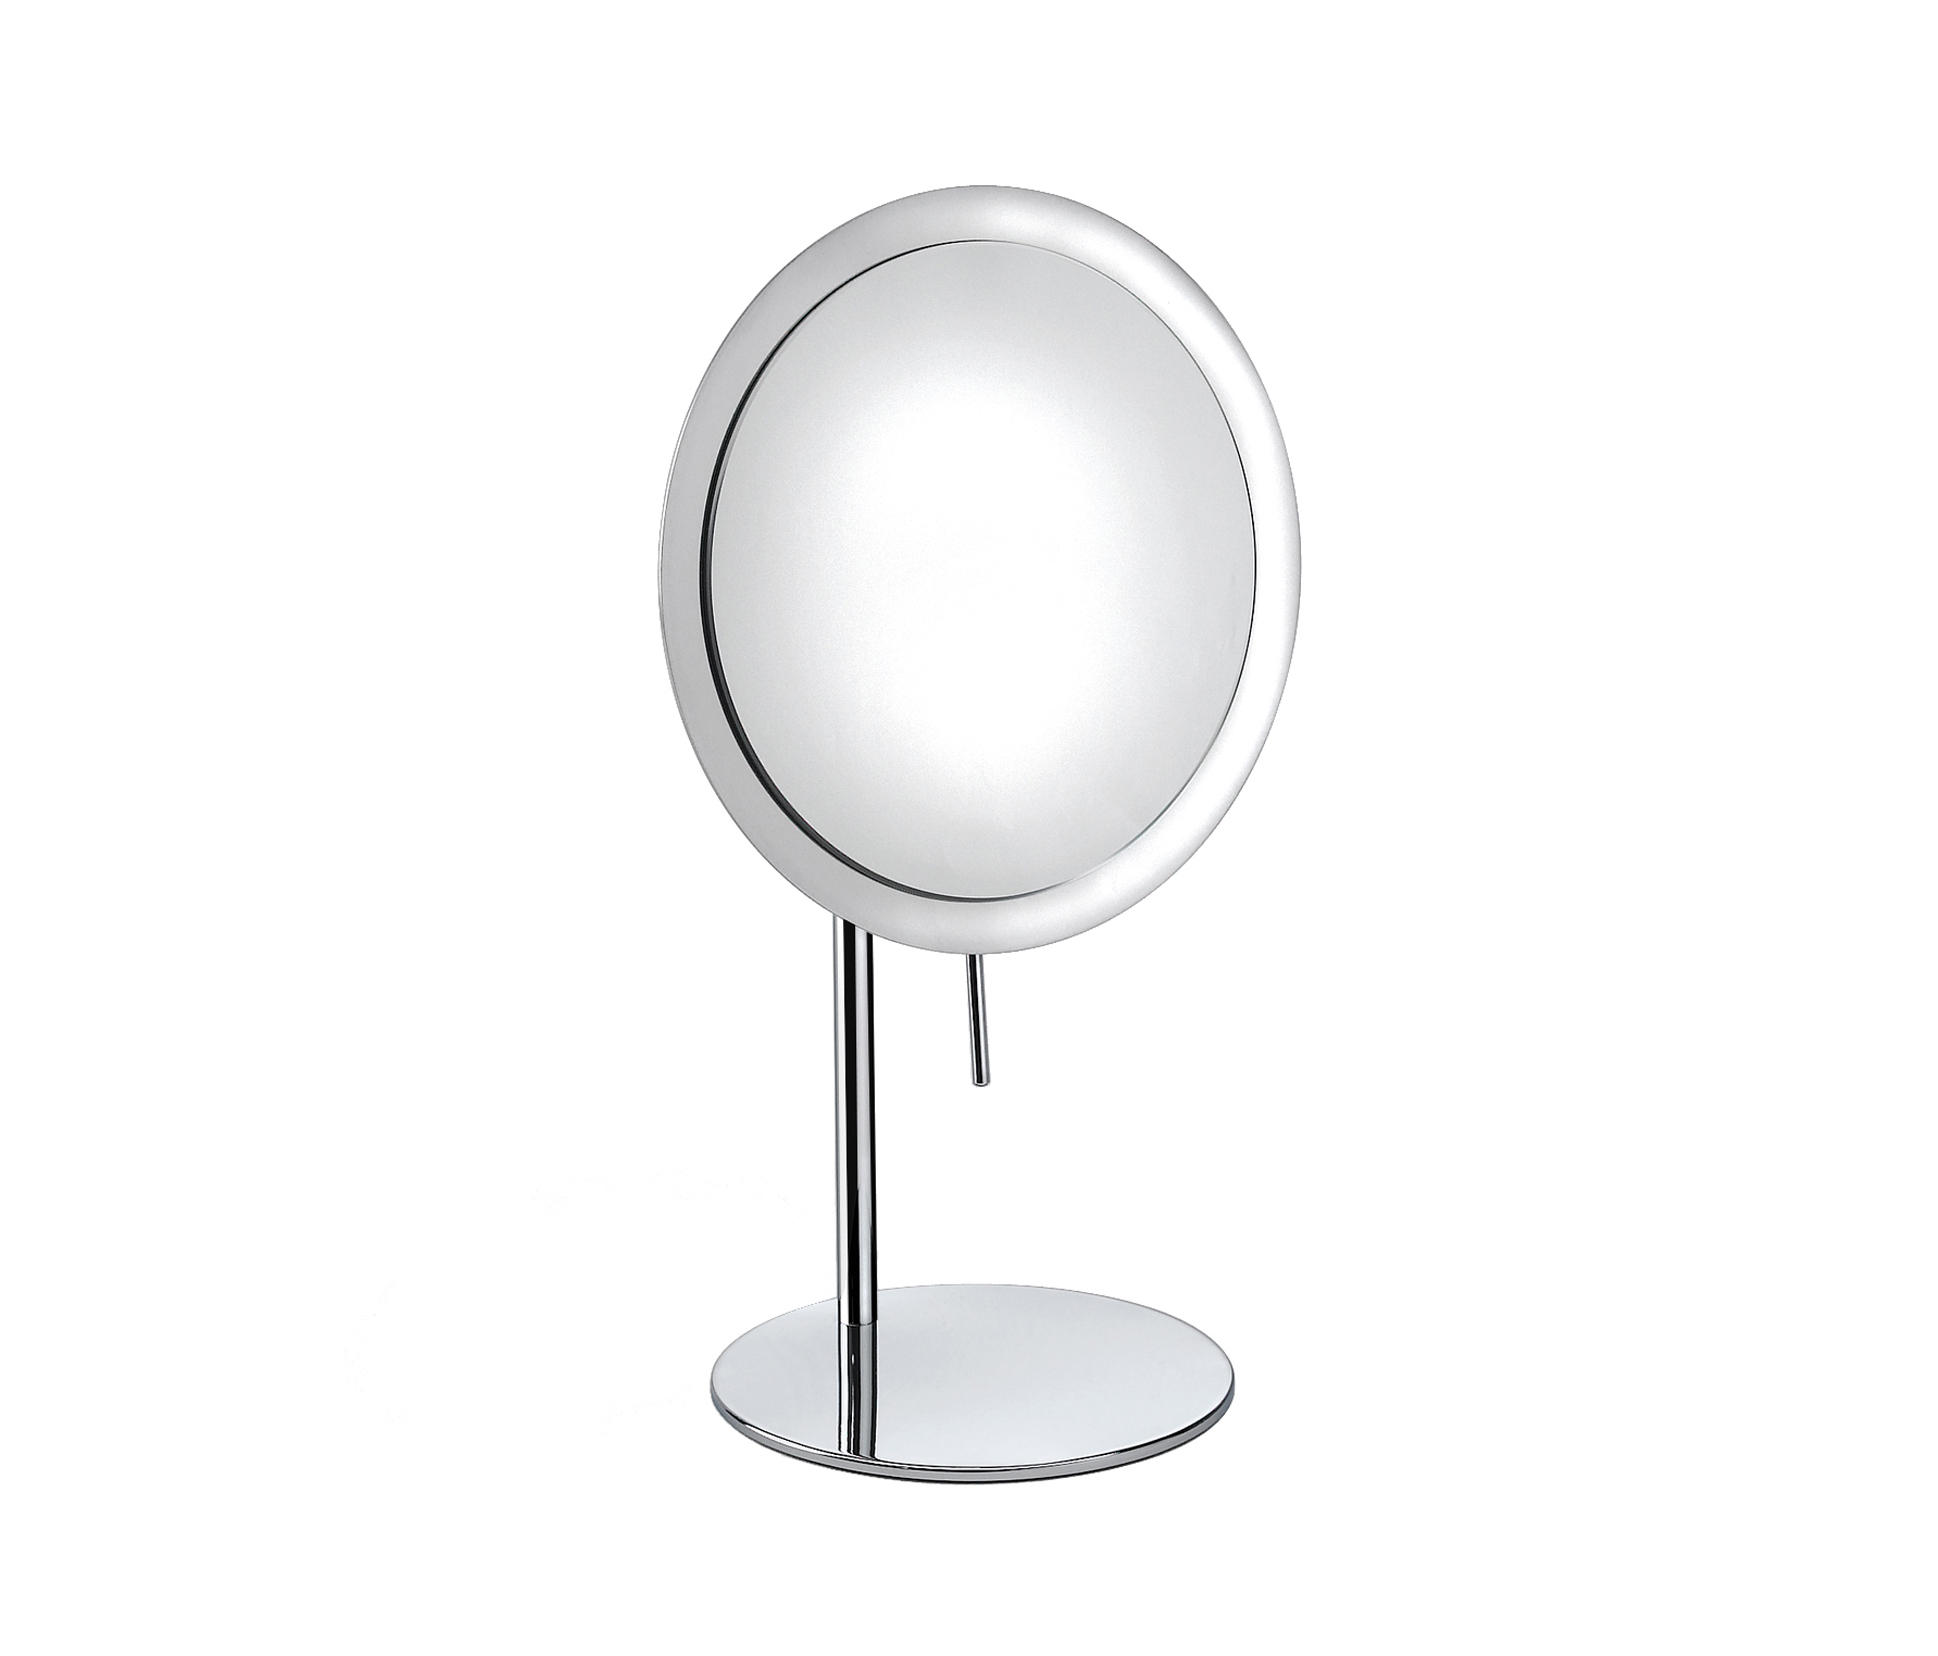 Illusion Free Standing Magnifying Mirror Mirrors From Pomd Or